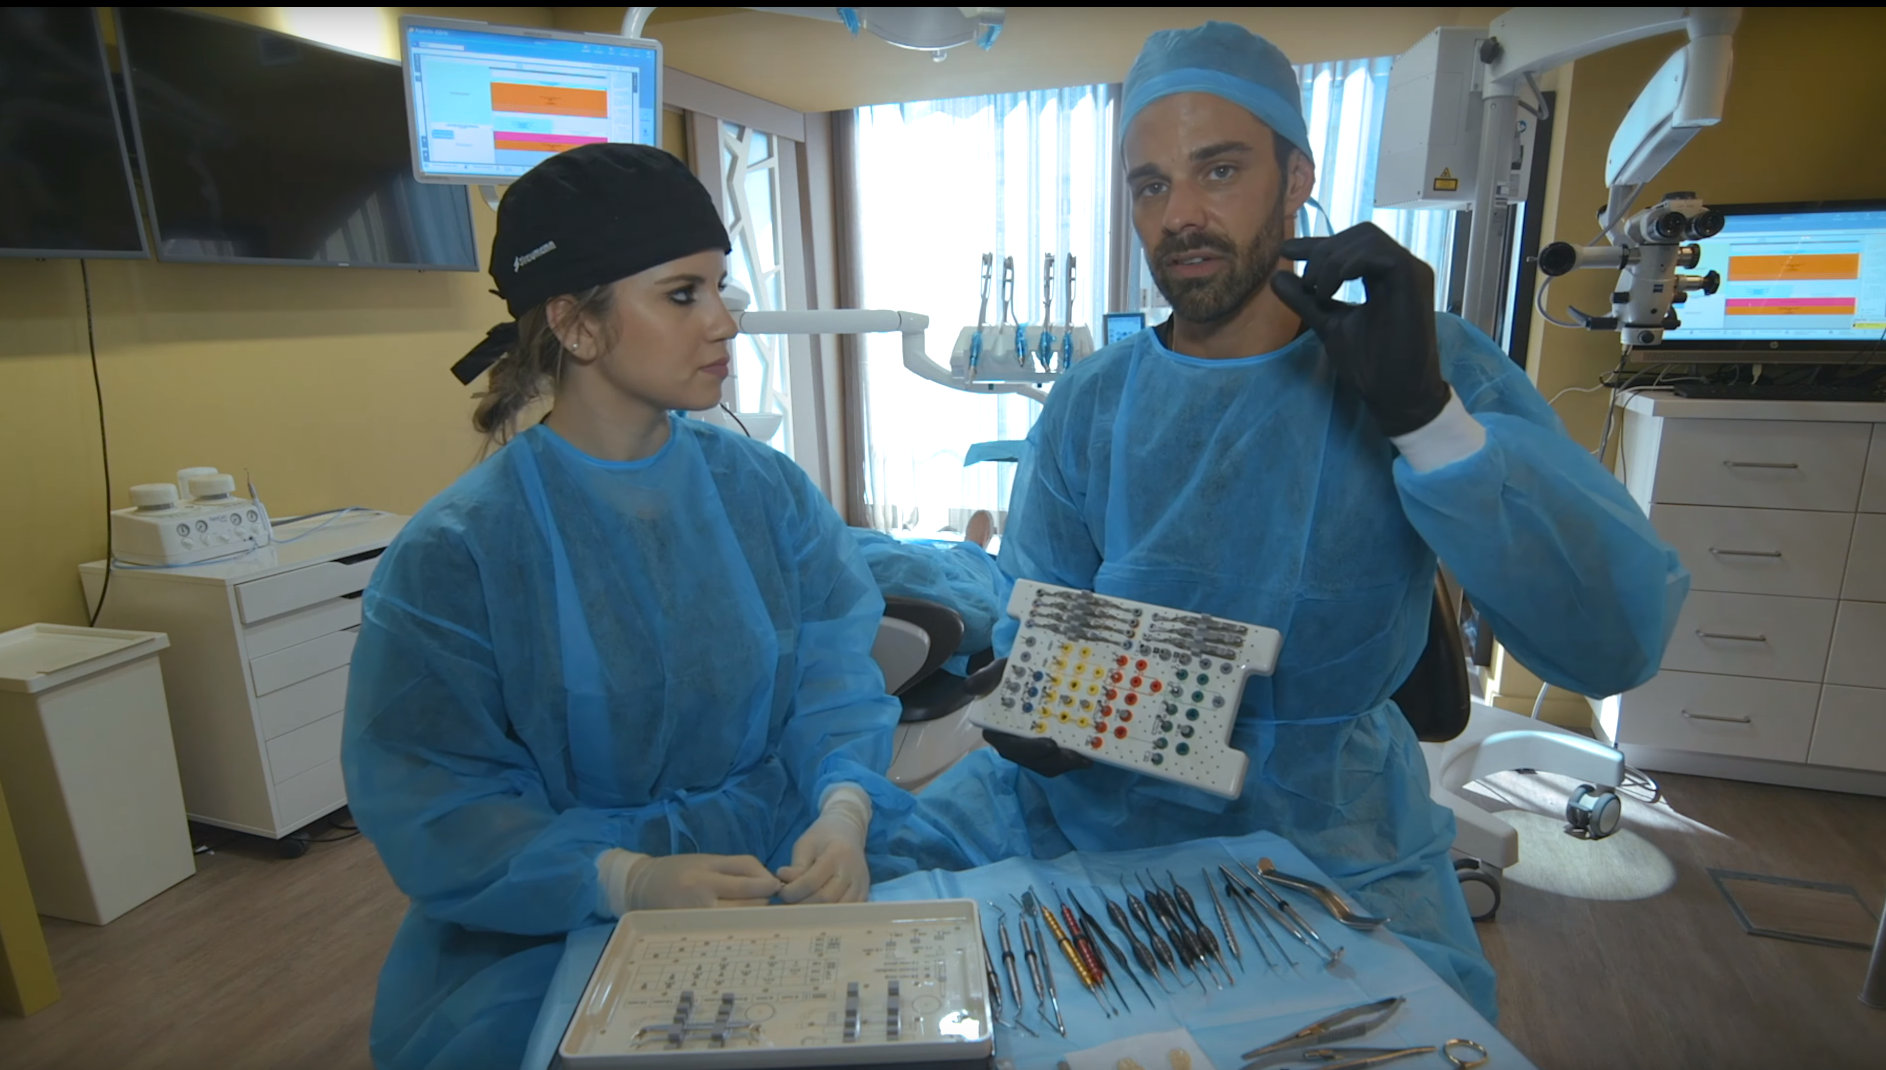 Second season of StraumannPLAY puts spotlight on digital dentistry